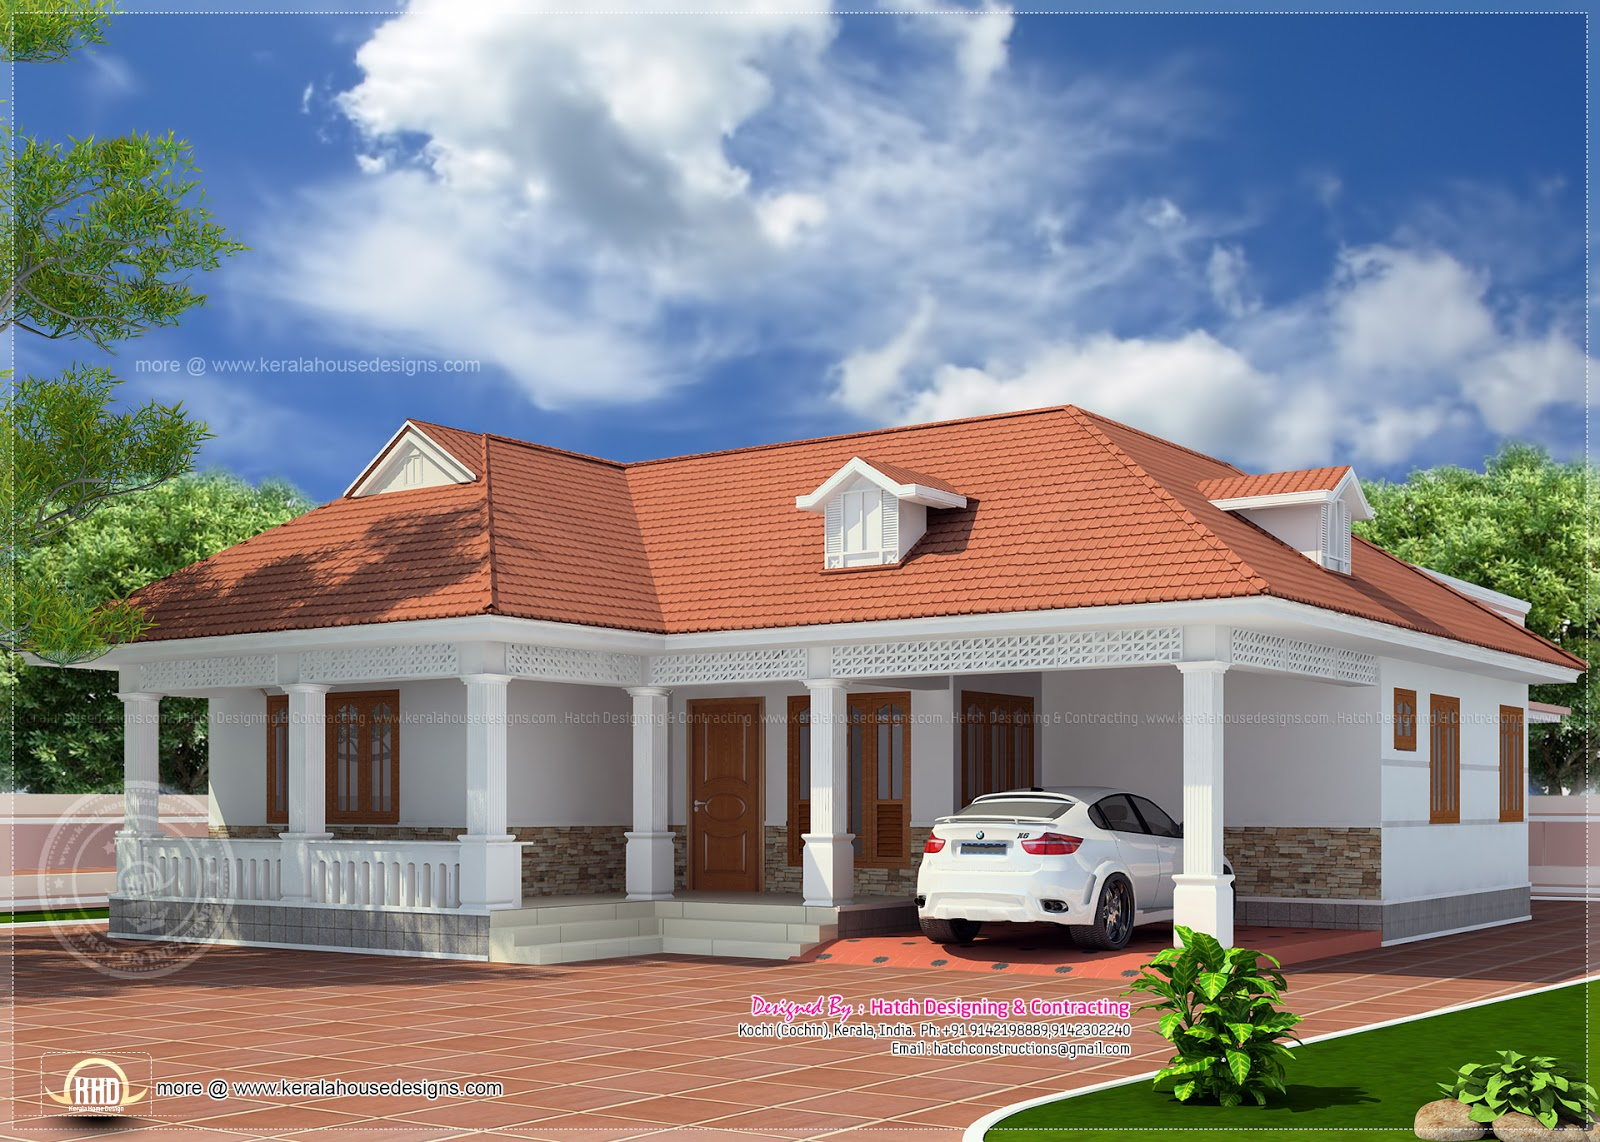 1850 kerala style home elevation kerala home for Kerala house plans and designs